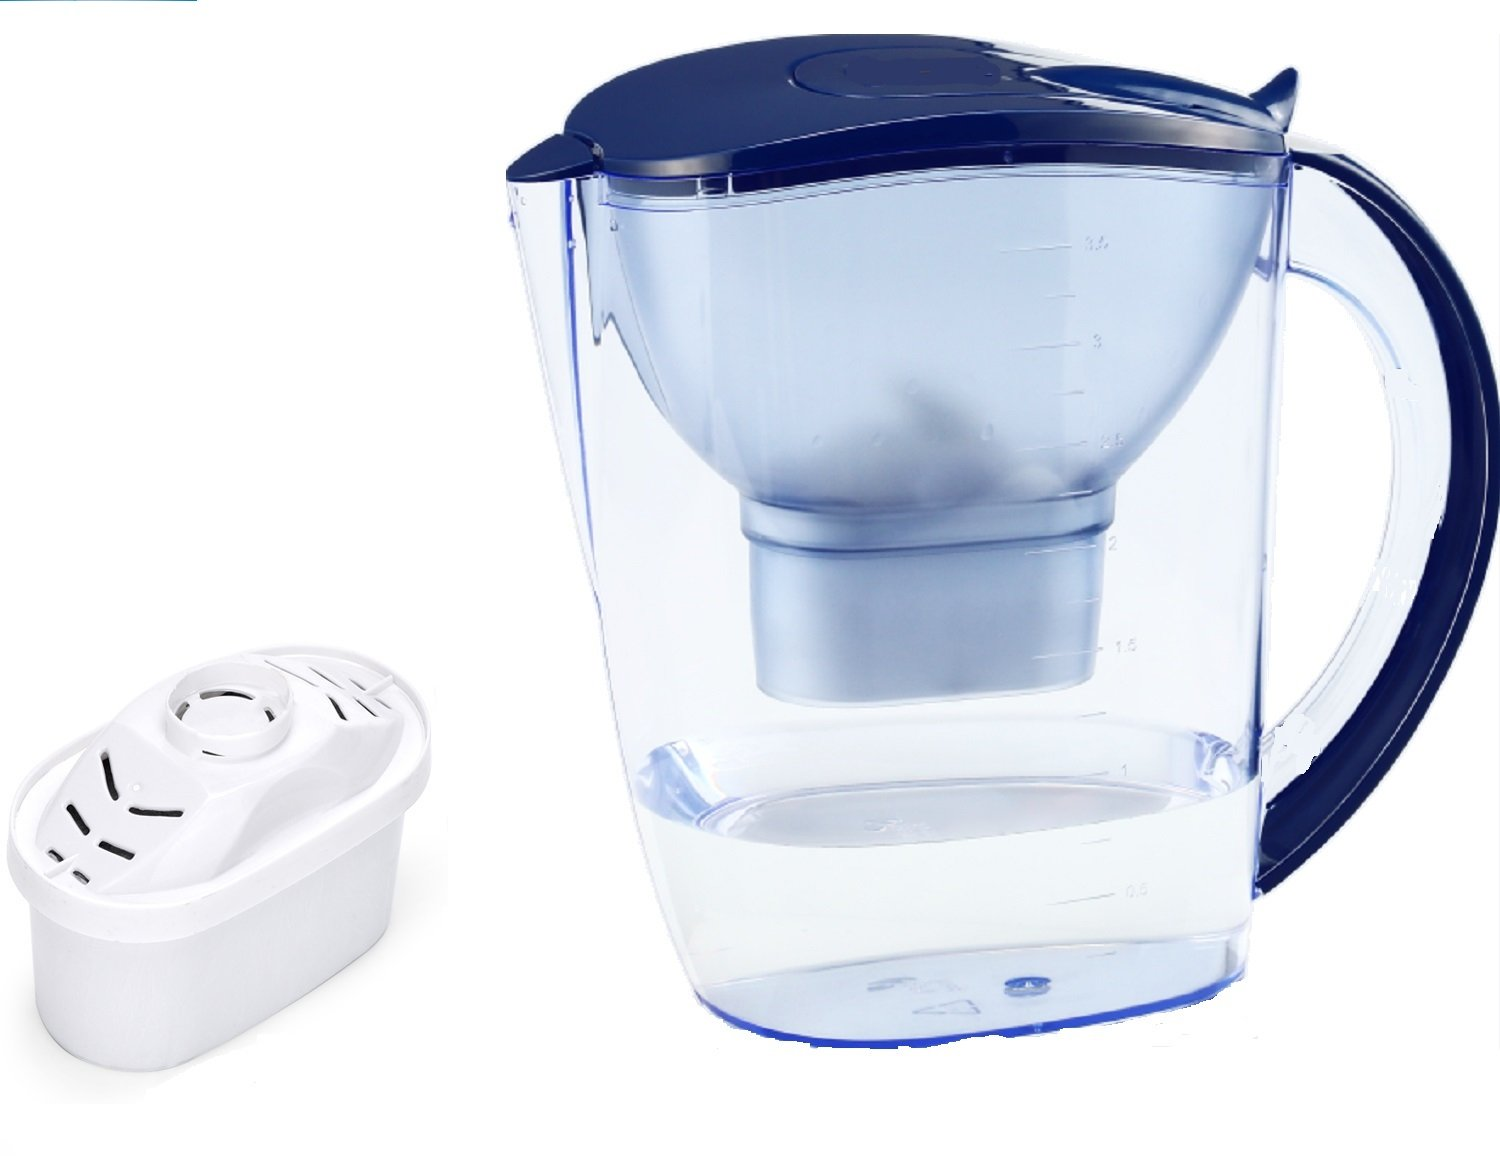 EHM ULTRA Premium Alkaline Water Pitcher - 3.5L Pure Healthy Water Ionizer With Activated Carbon Filter - Healthy, Clean & Toxin-Free Mineralized Alkaline Water In Minutes - PH 8.5 - 9.5 - 2018 by EHM (Image #3)